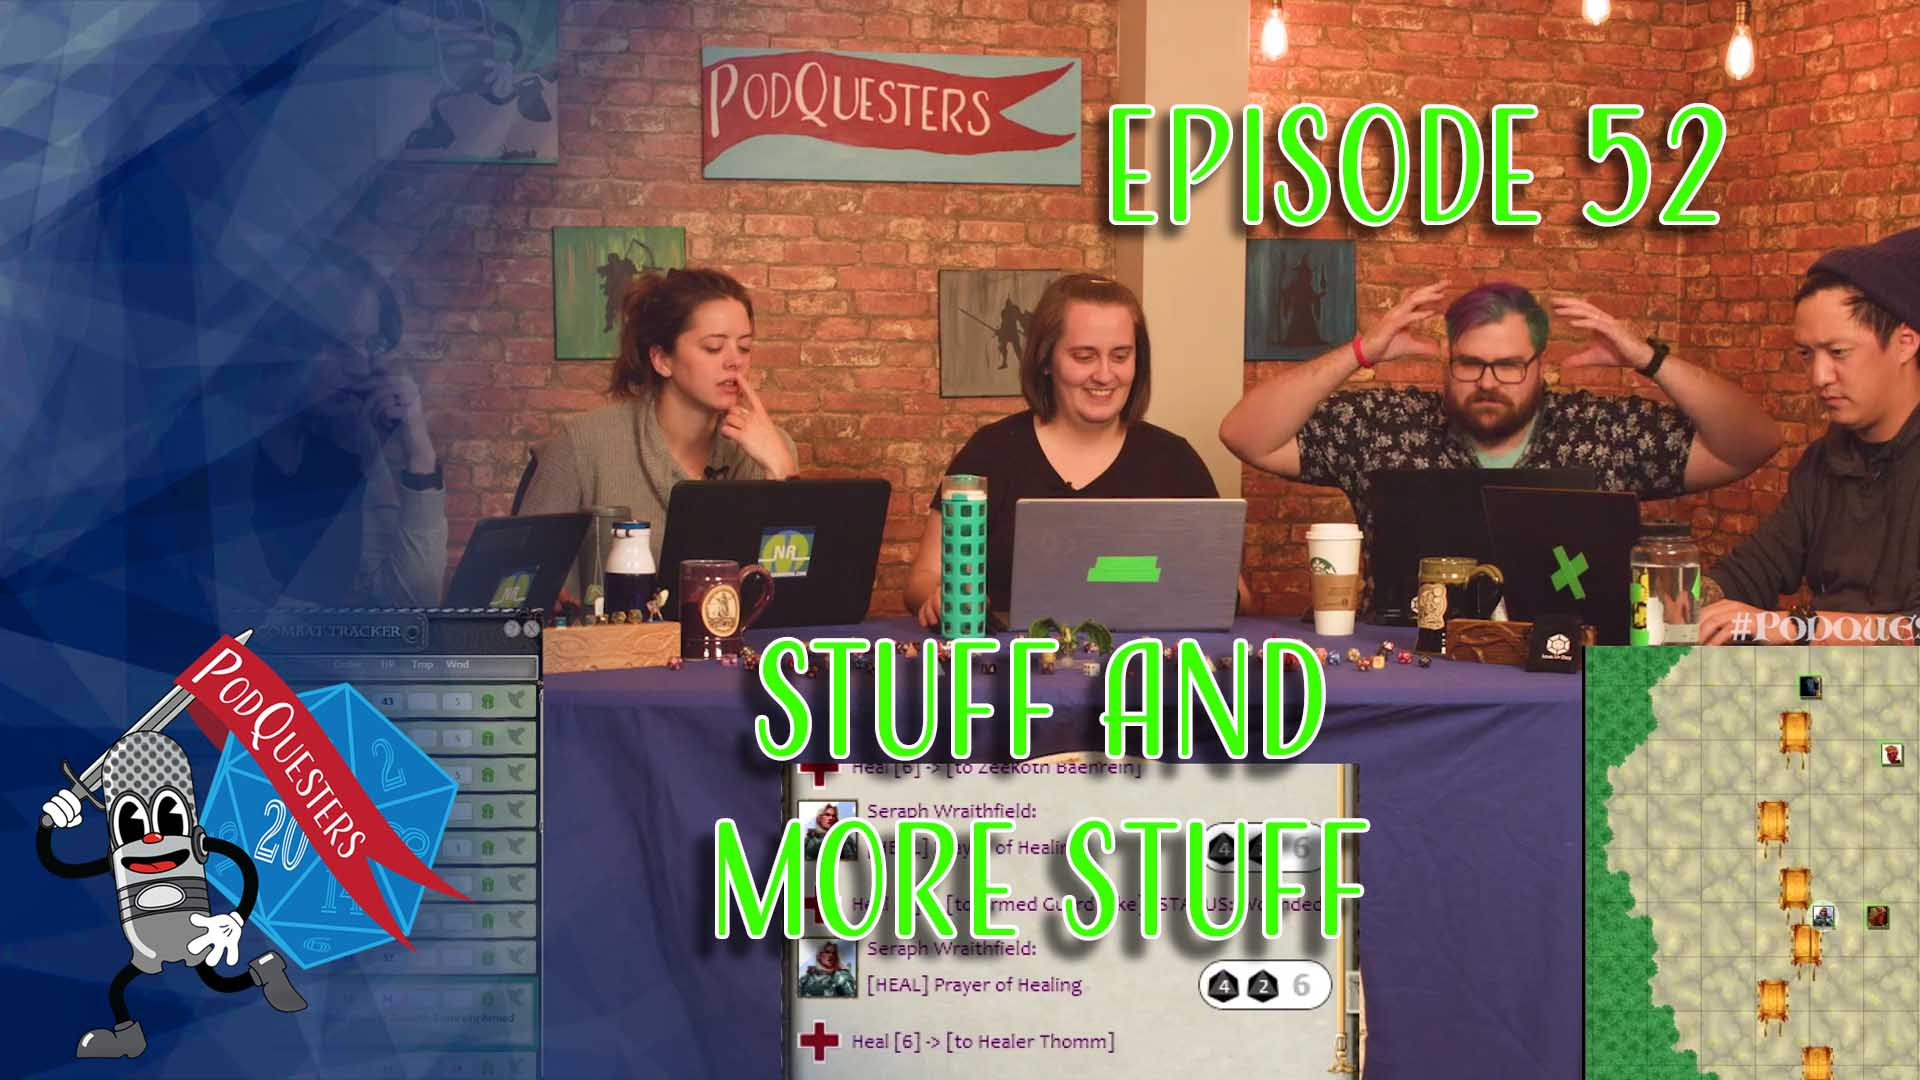 Podquesters - Episode 52: Stuff and More Stuff